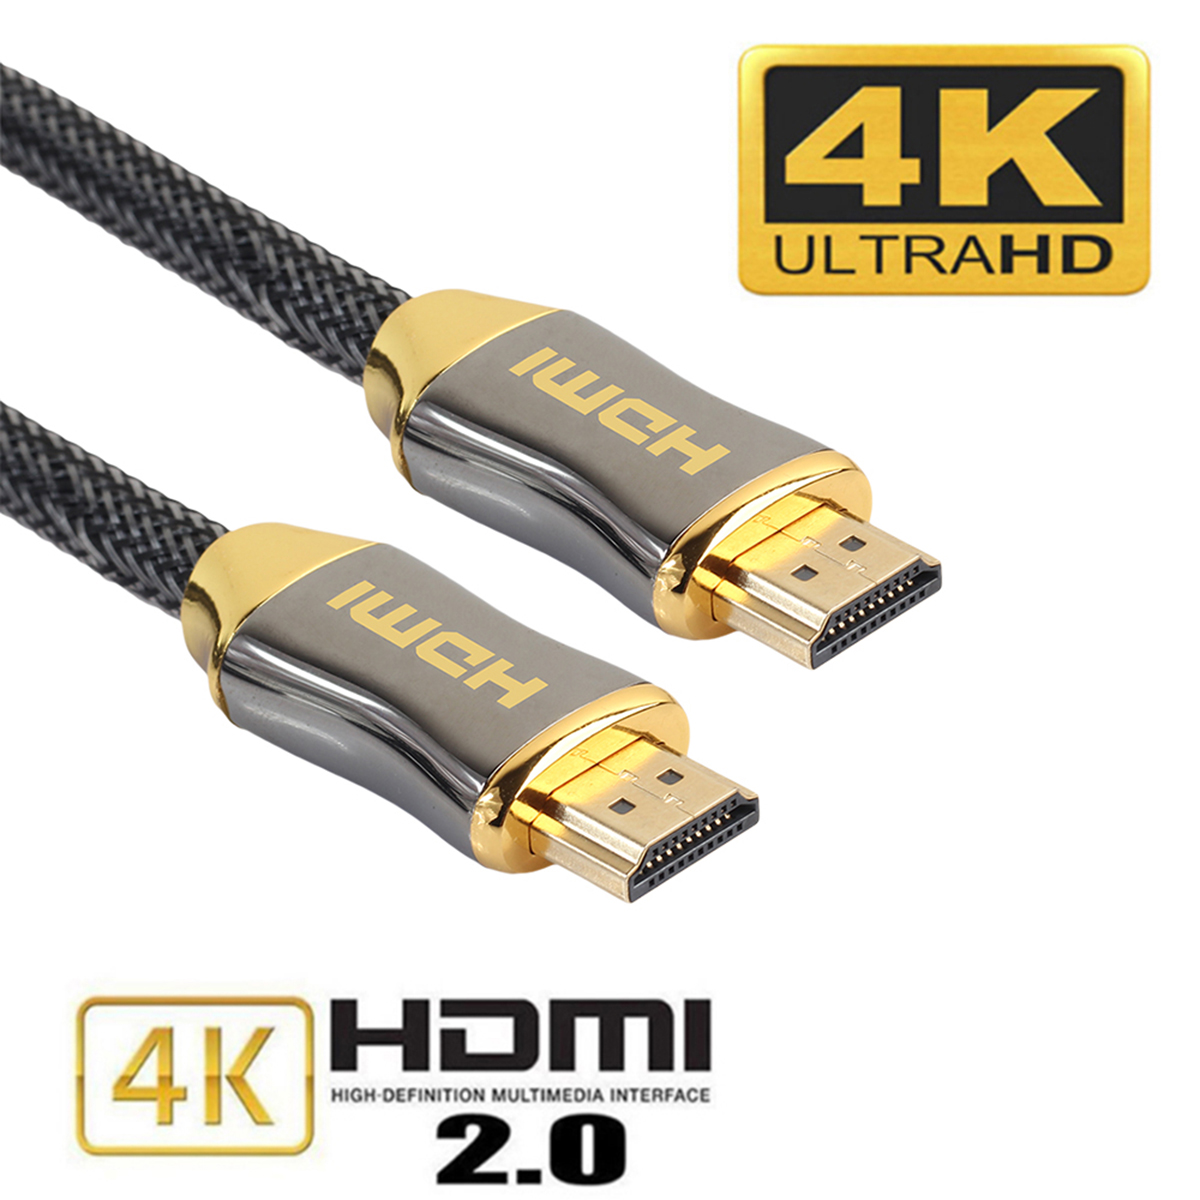 6FT Premium Ultra HD HDMI Cable v2.0 High Speed Ethernet LCD HDTV 2160p 4K USA